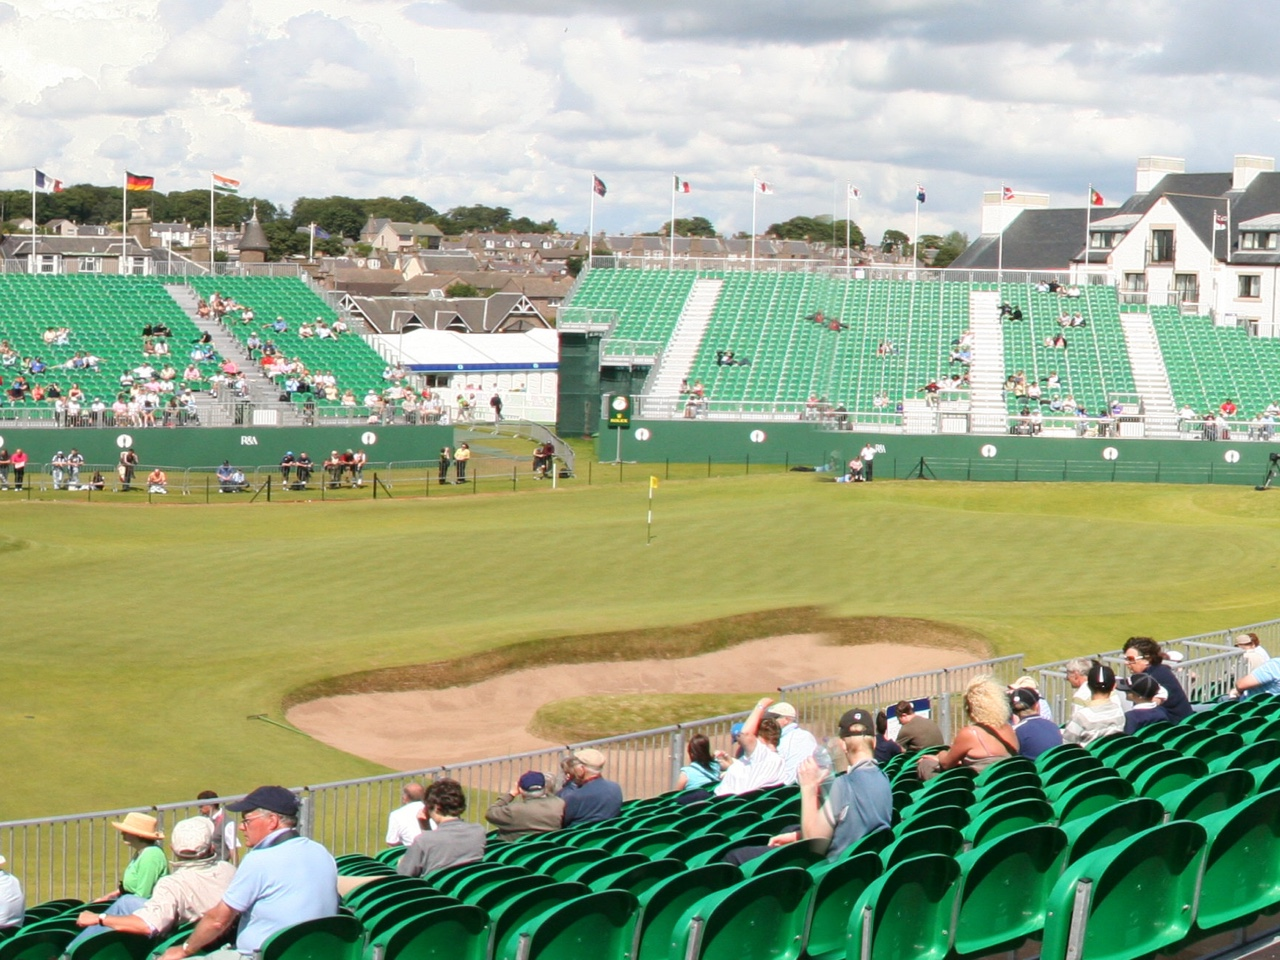 The 18th hole at Carnoustie.